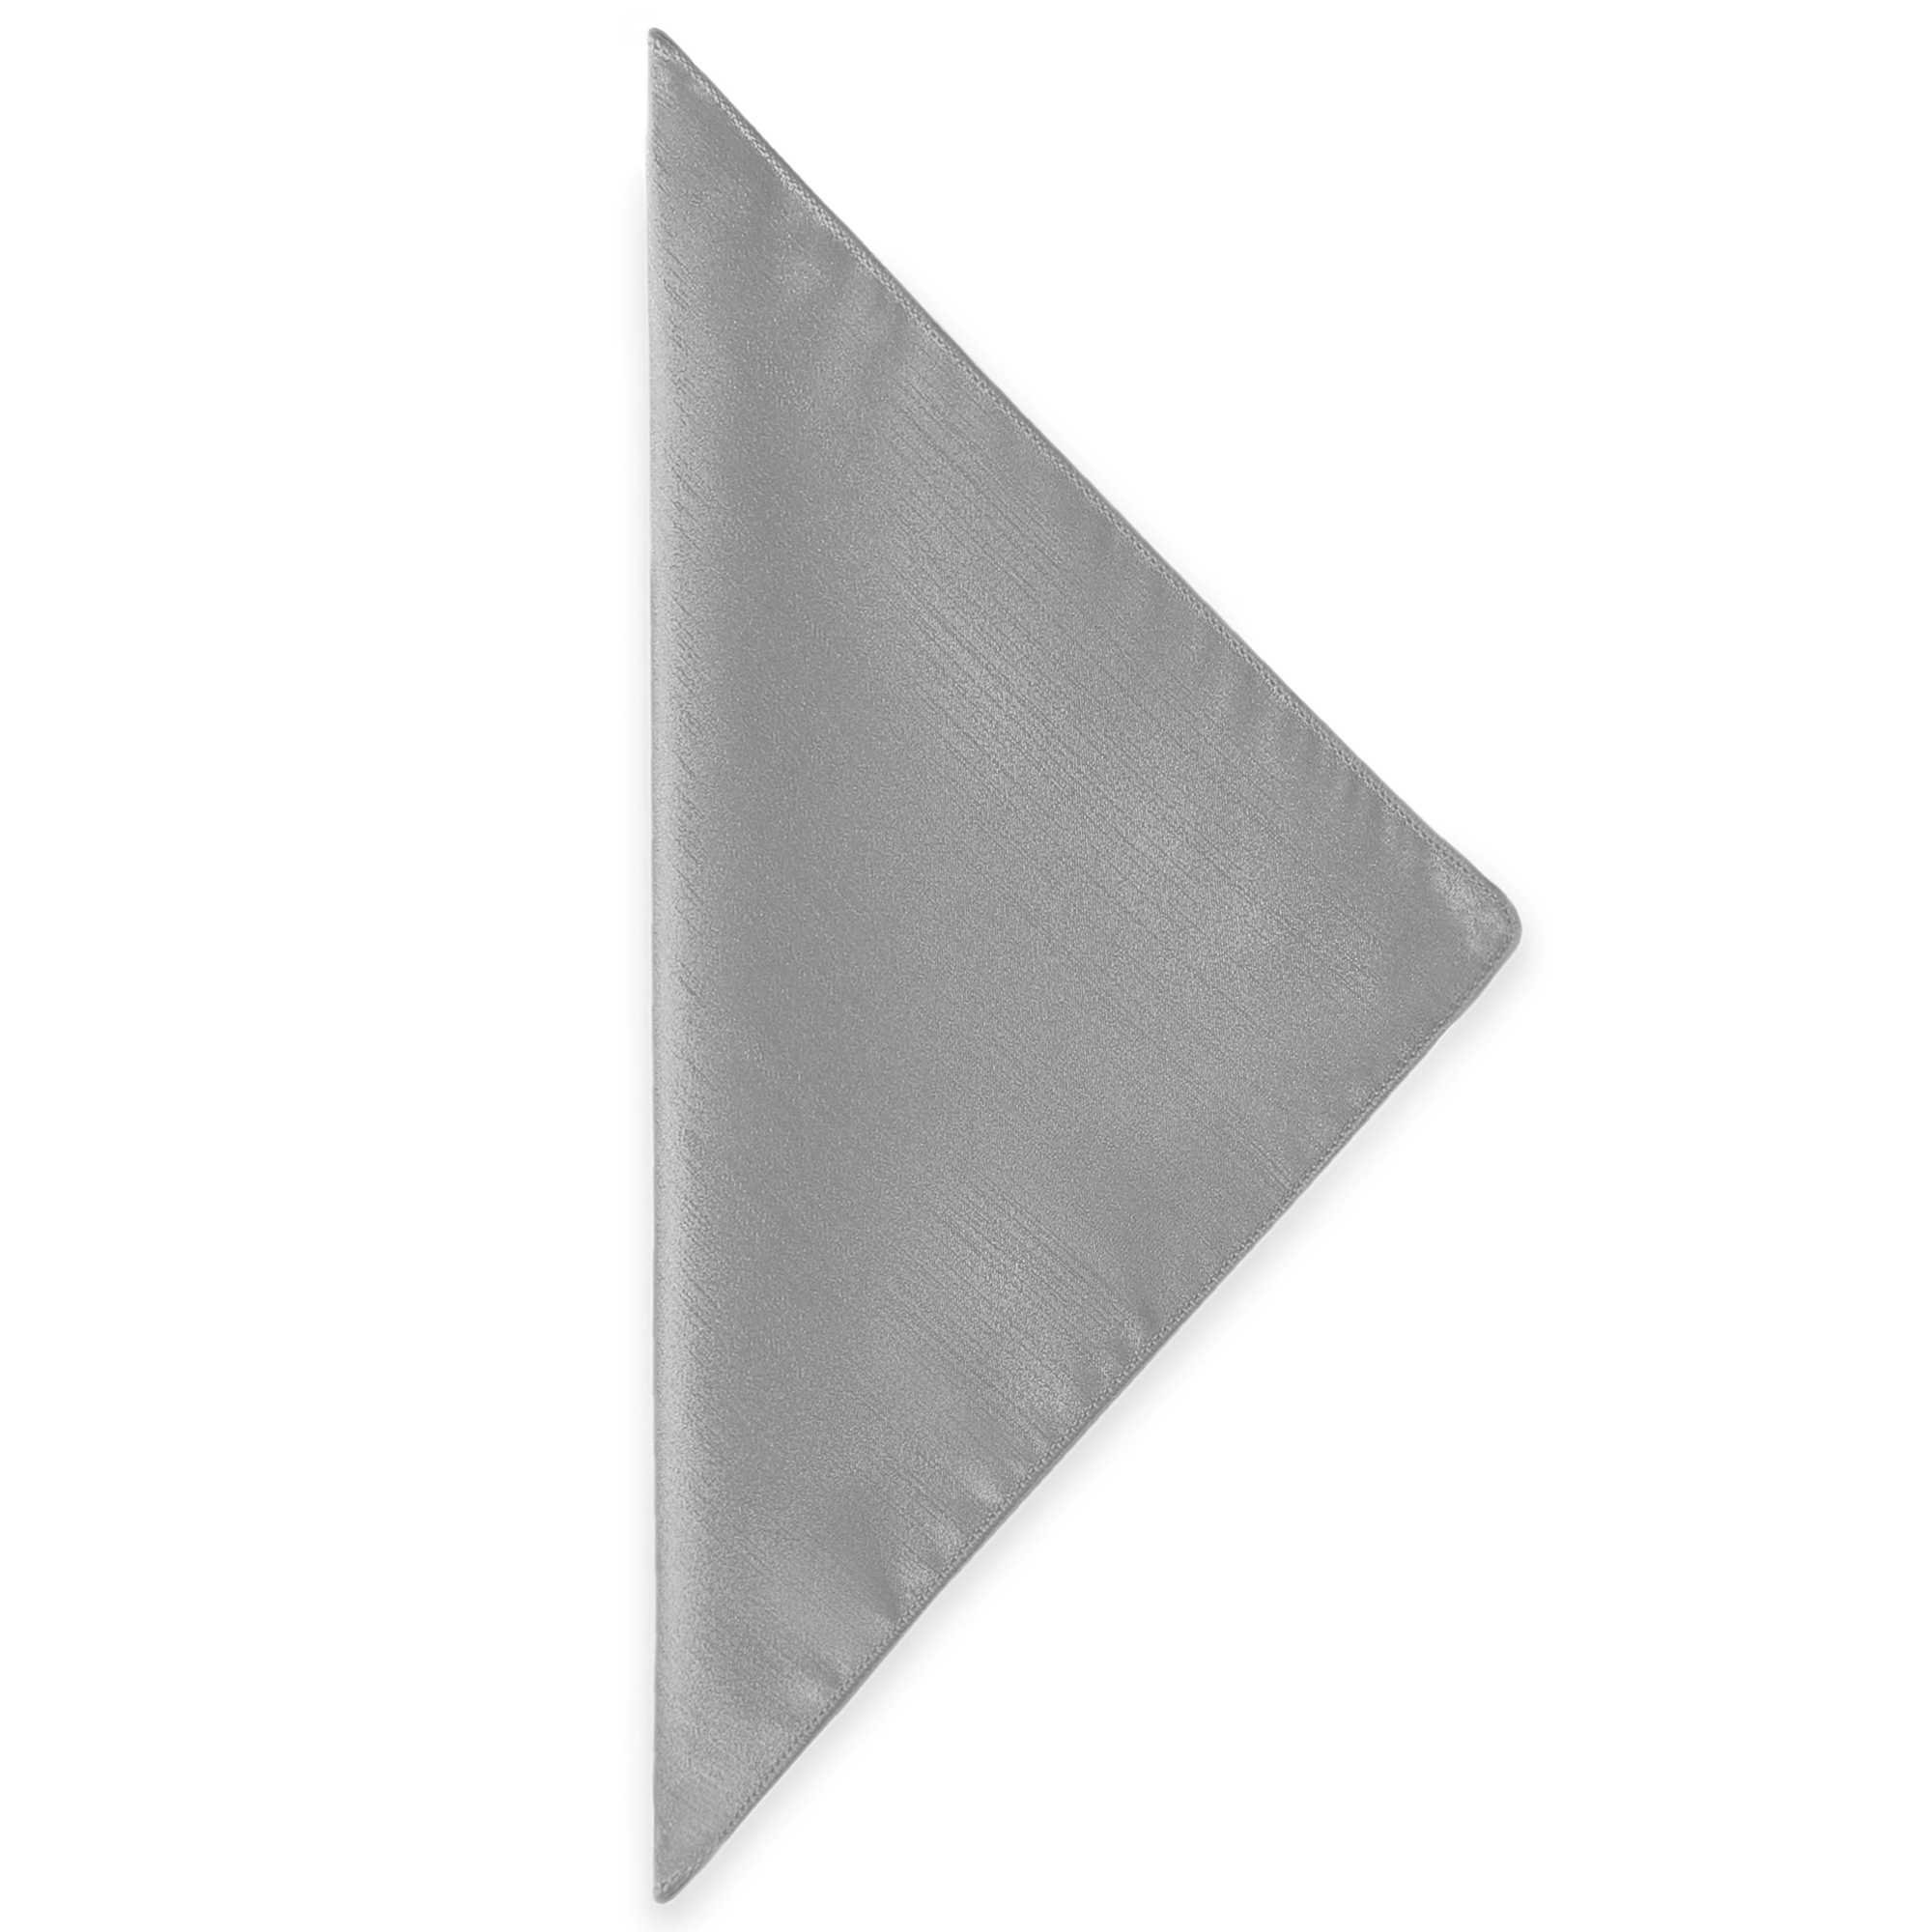 Ultimate Textile (46 Dozen) Reversible Shantung Satin - Majestic 20 x 20-Inch Cloth Dinner Napkins - for Weddings, Home Parties and Special Event use, Silver